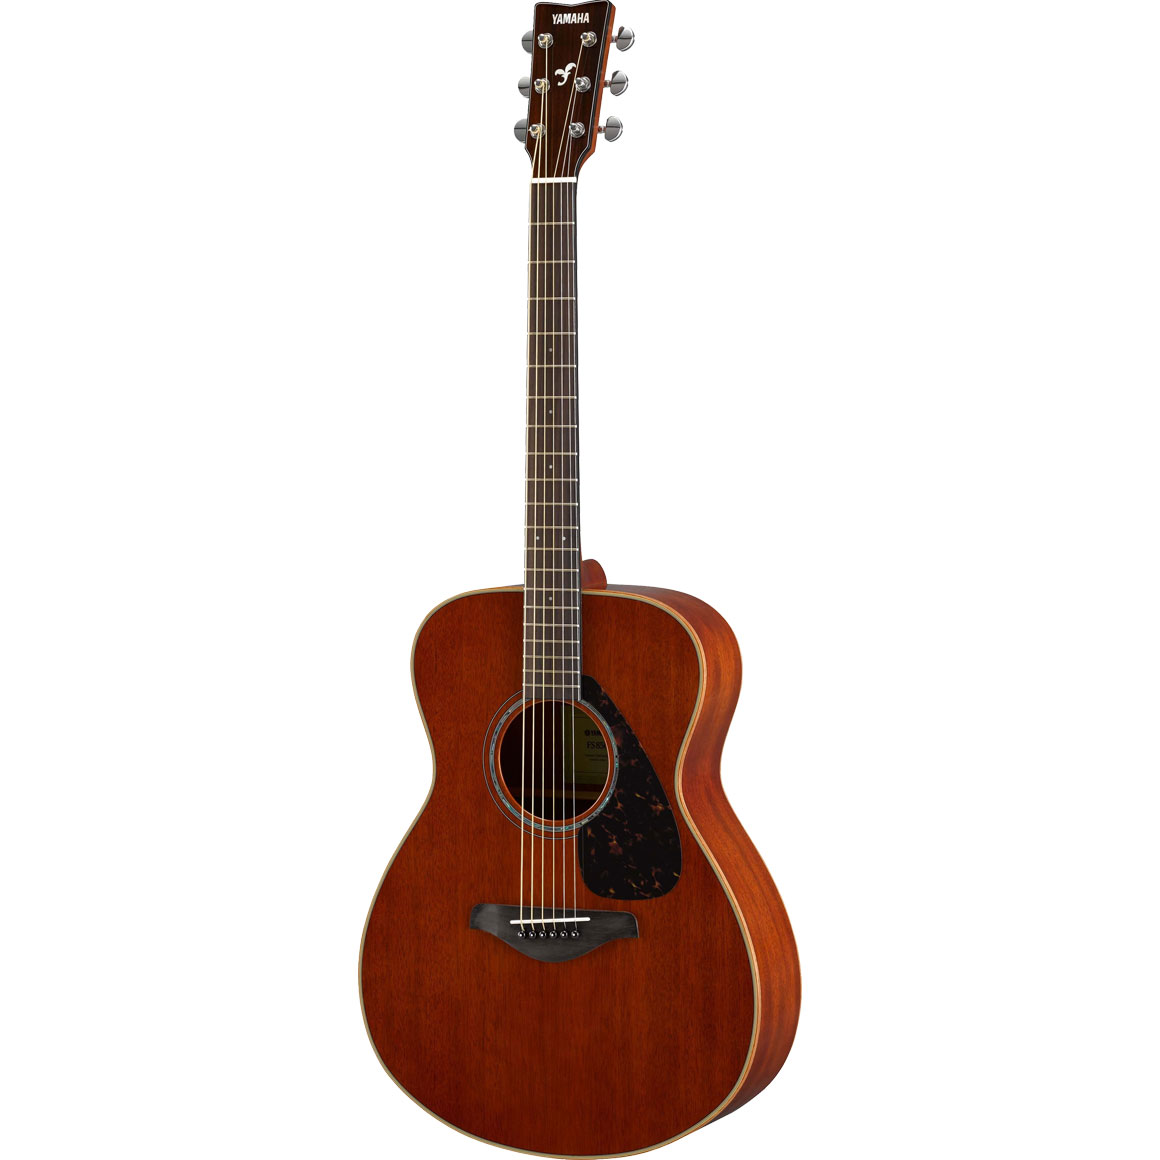 Image for FS850 - Acoustic Guitar from Yamaha Music Online Shop